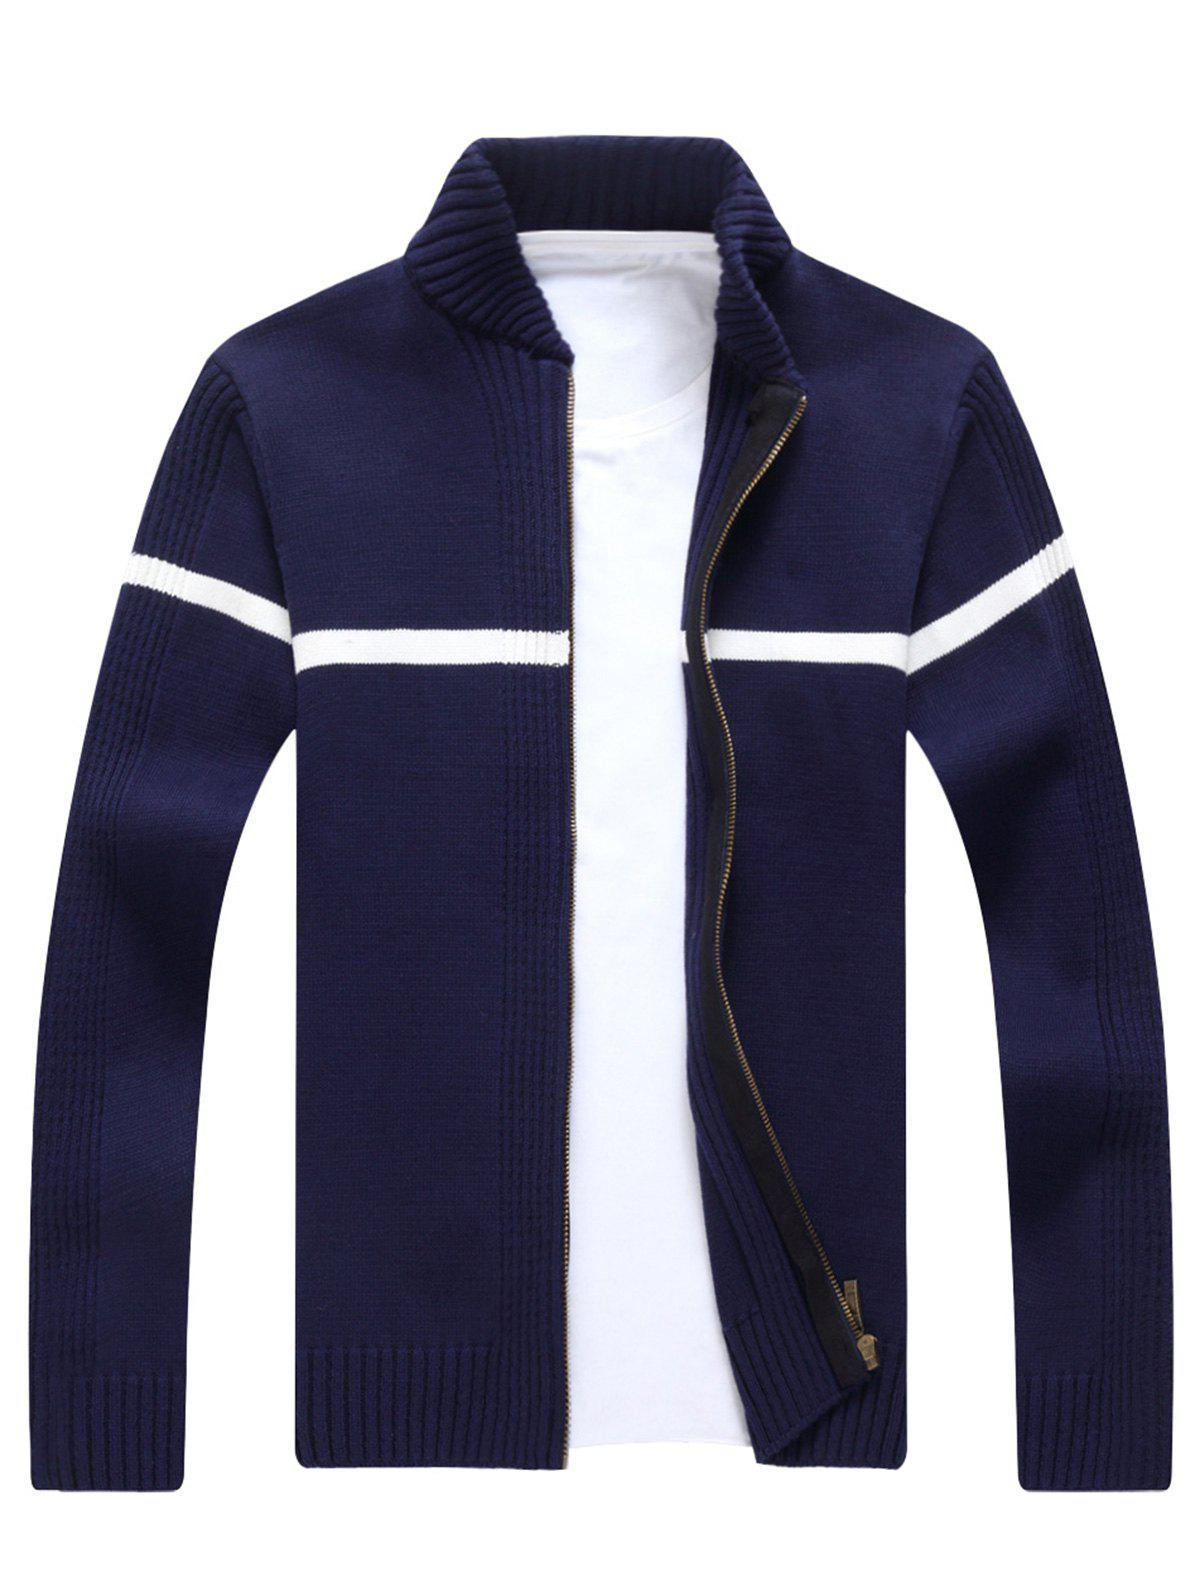 Ribbed Single Stripe Zip Up Cardigan - CADETBLUE XL